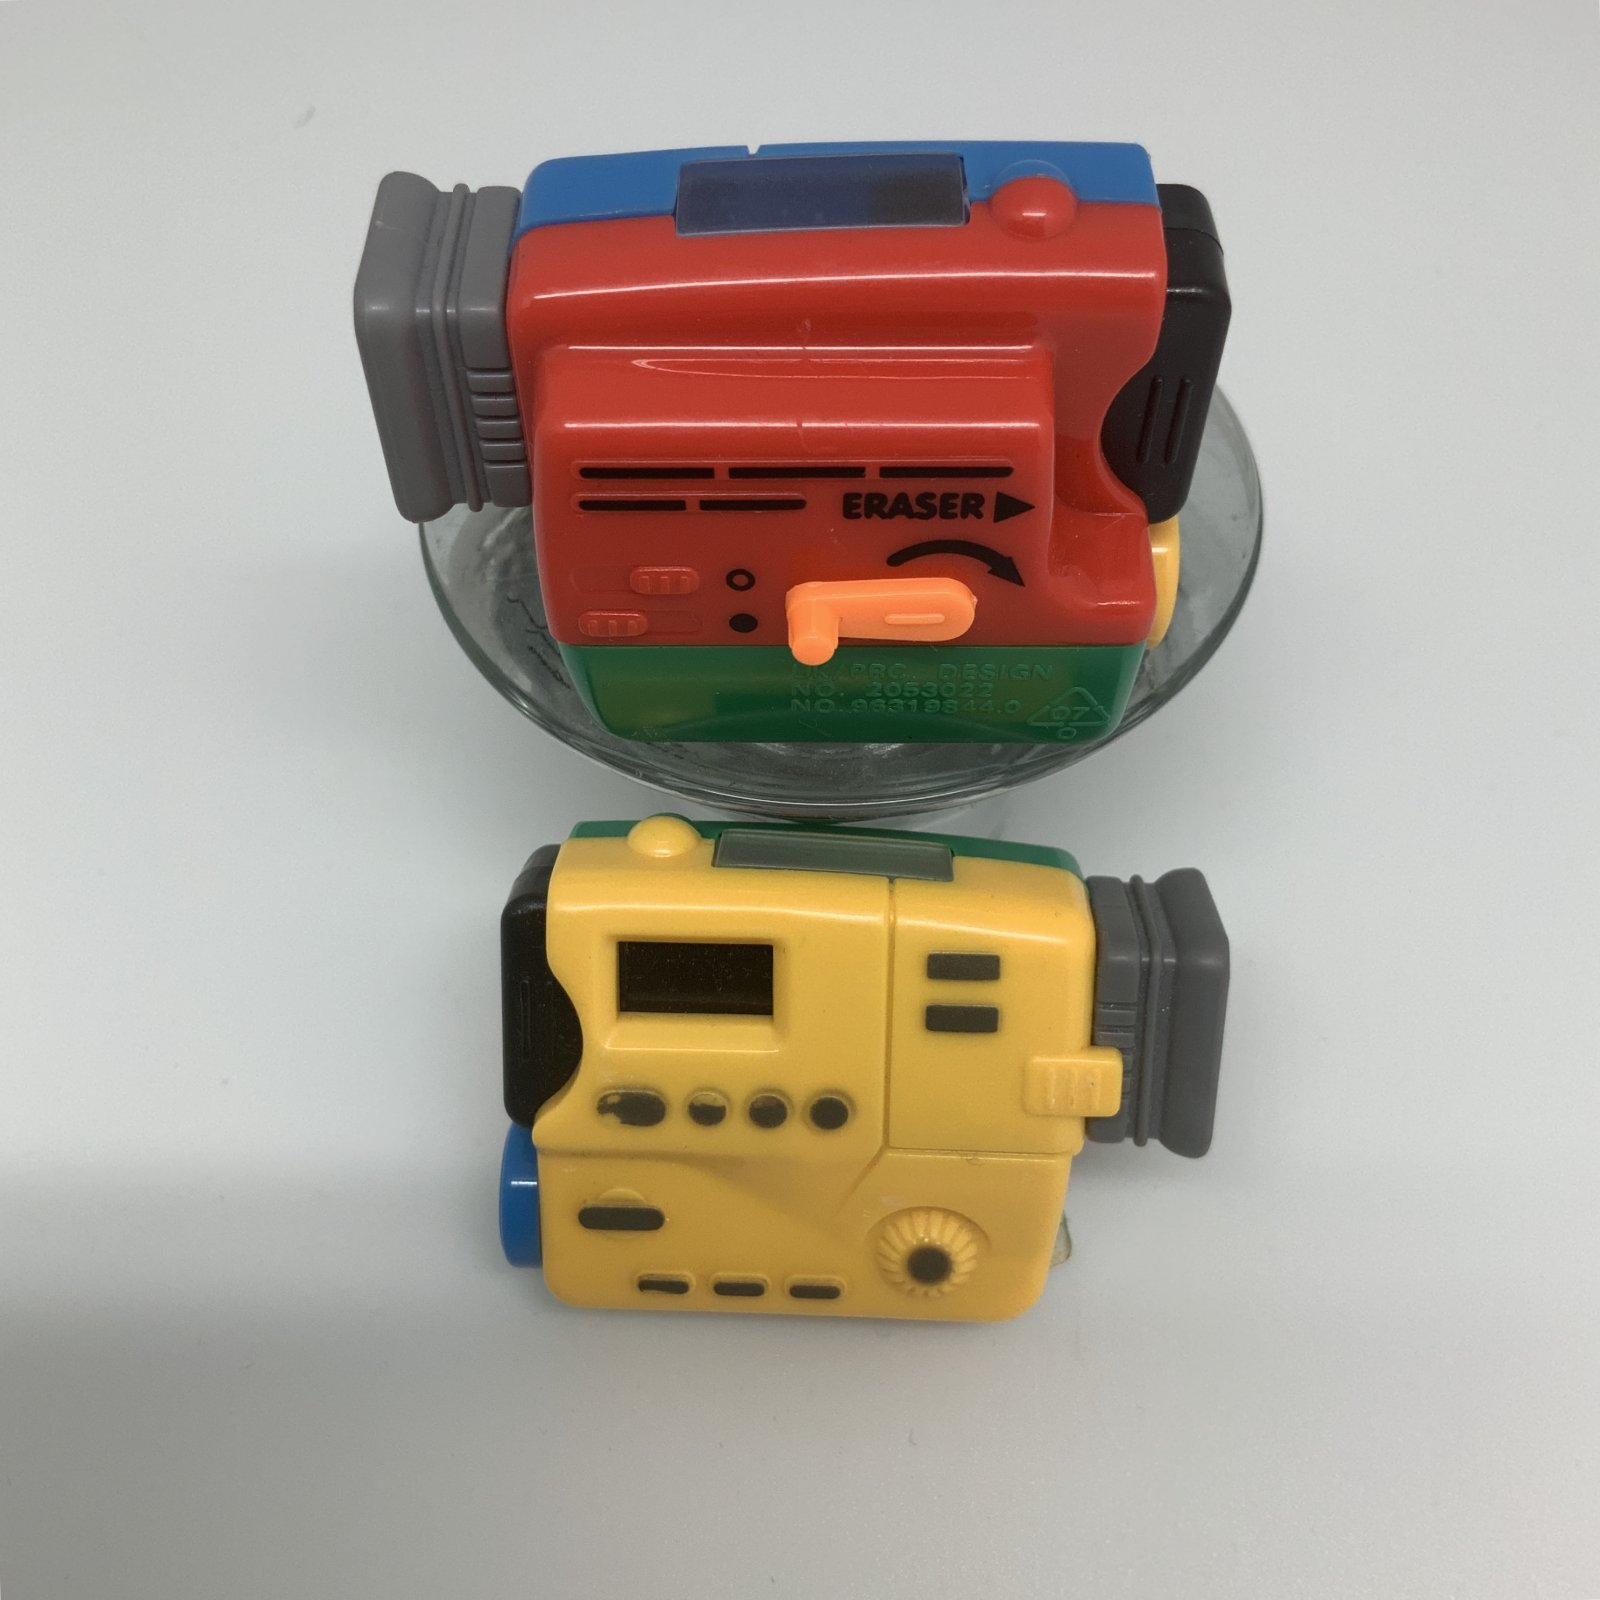 Video Camera Pencil Sharpener